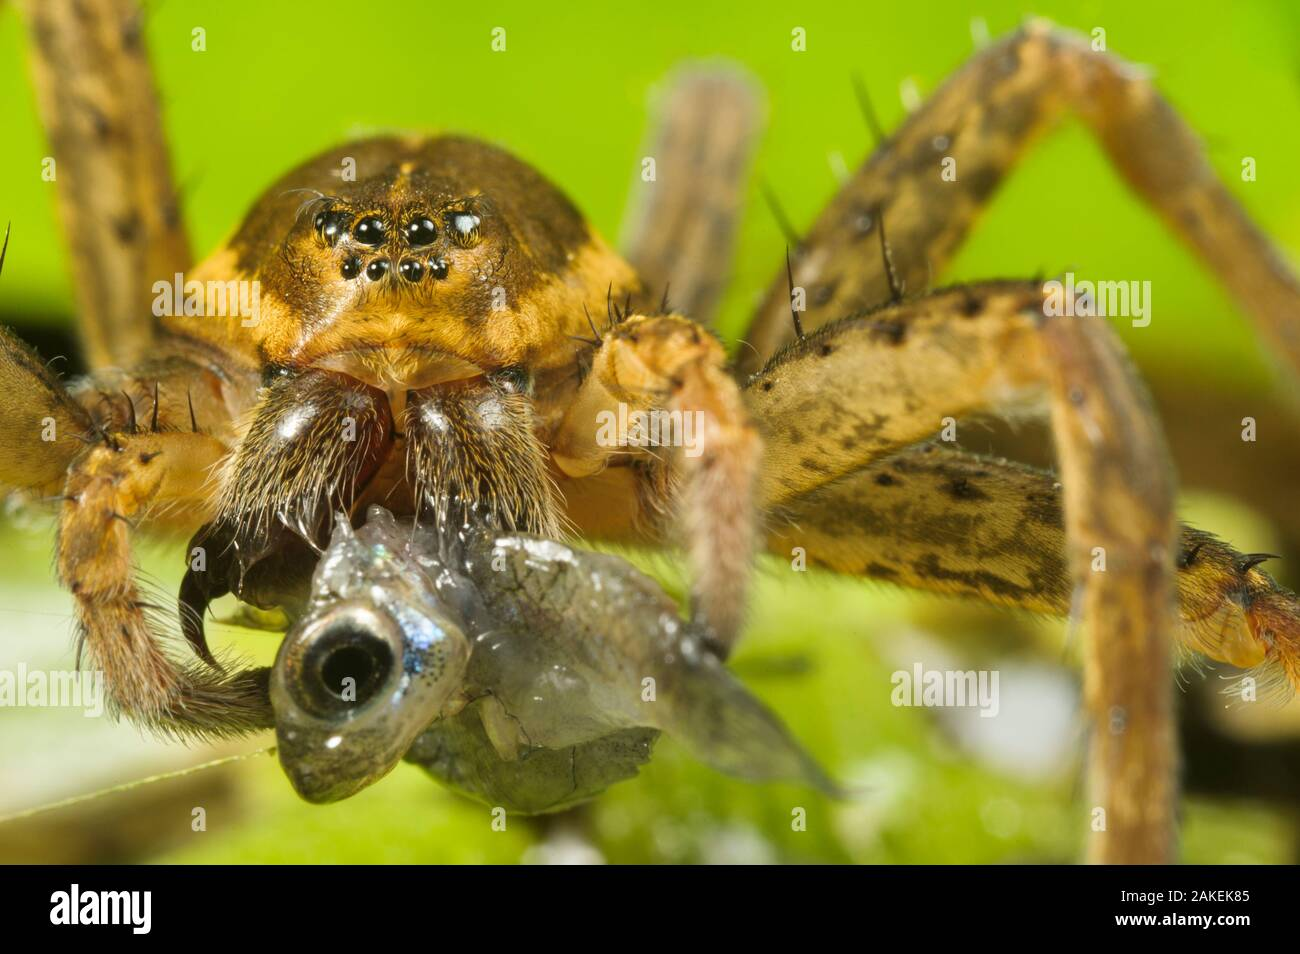 Great Fen / Raft spider (Dolomedes plantarius), adult female eating an invasive species of fish, Western mosquitofish, (Gambusia affinis), Alessandria, Italy, August. Stock Photo